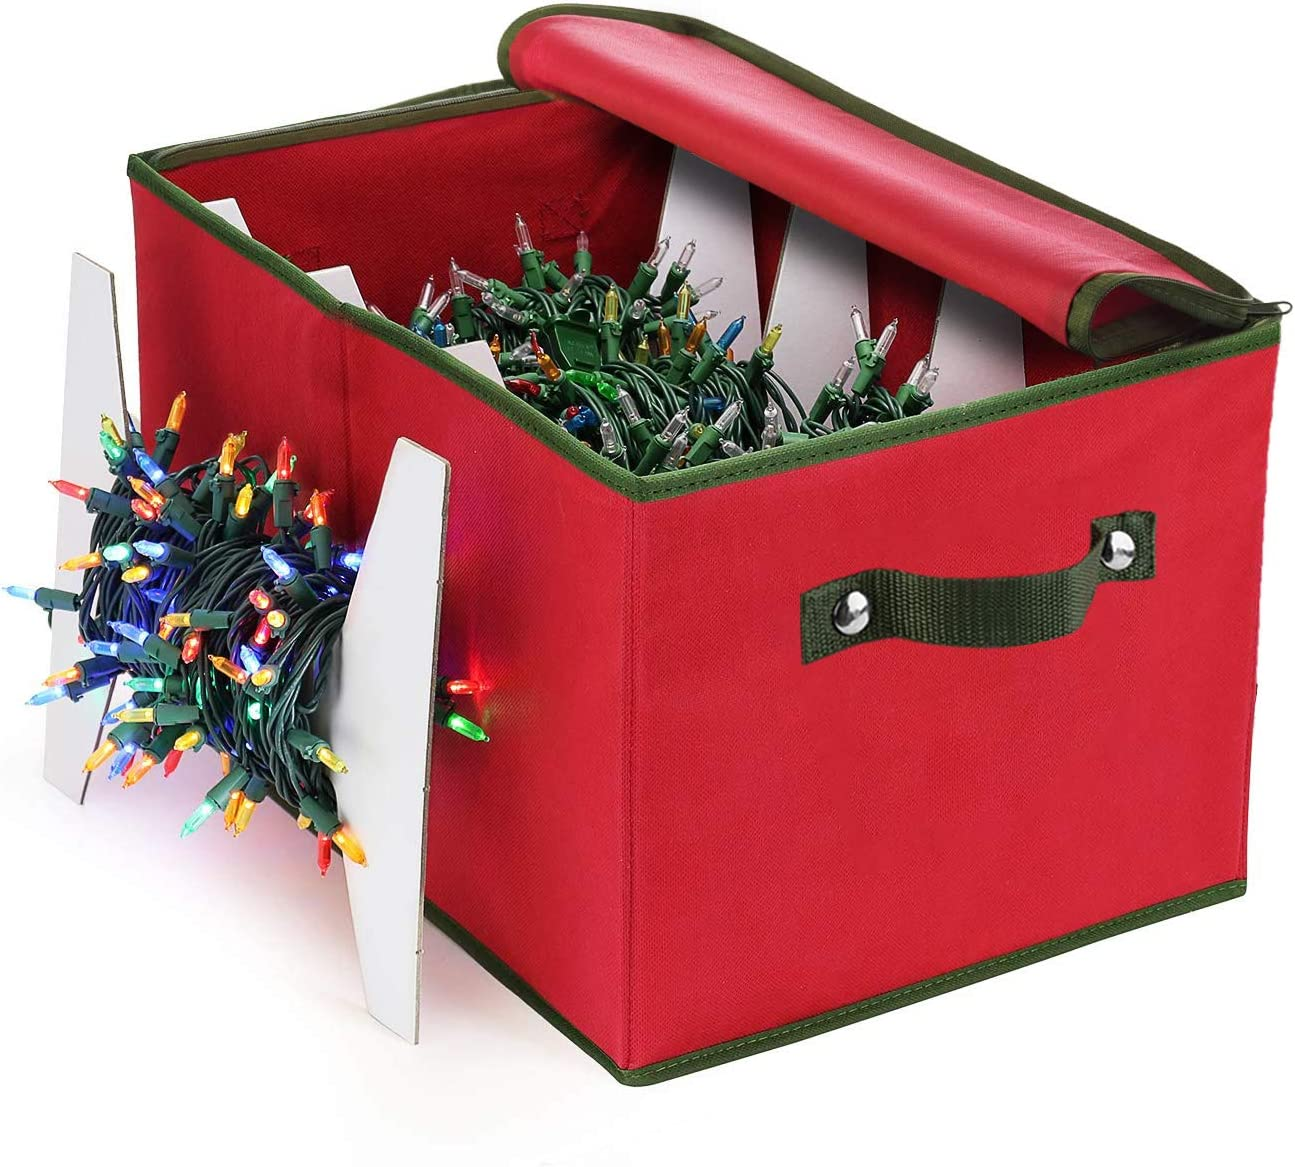 ZOBER Christmas Light Storage Box–Non-Woven with Denver Mall Large-scale sale C Fabric 4